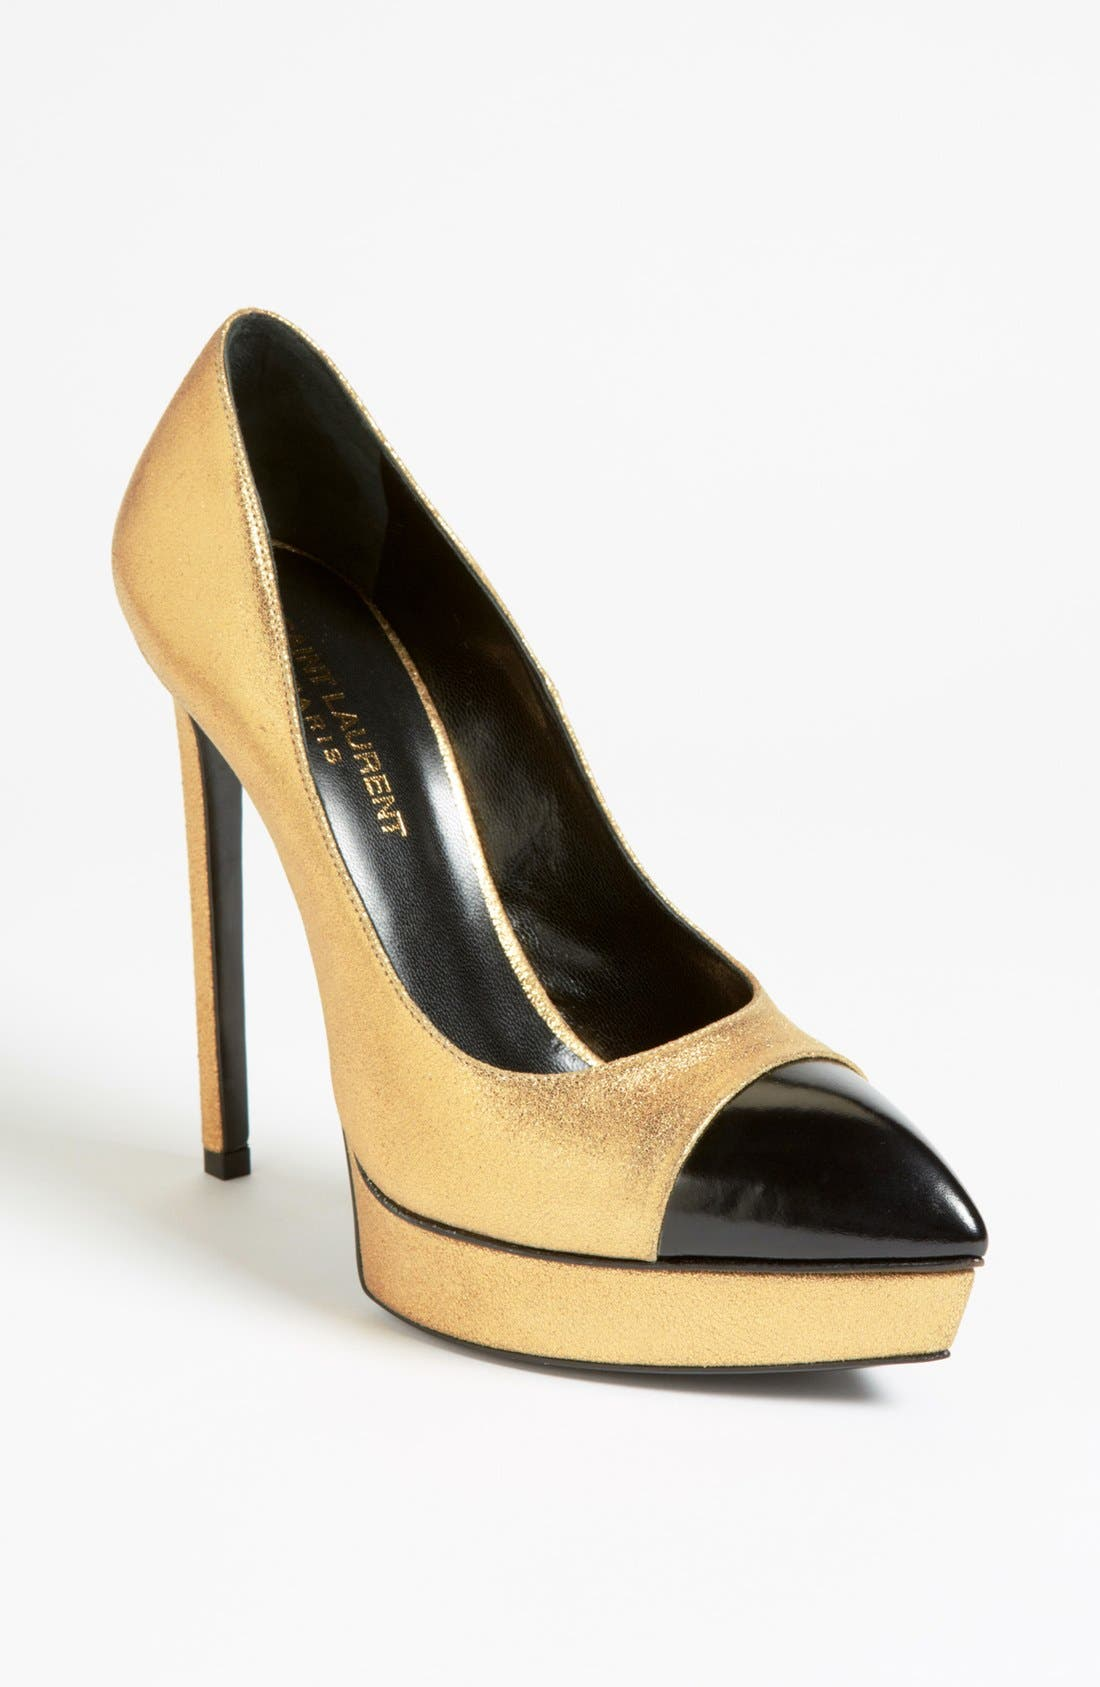 Main Image - Saint Laurent 'Janis' Platform Pump